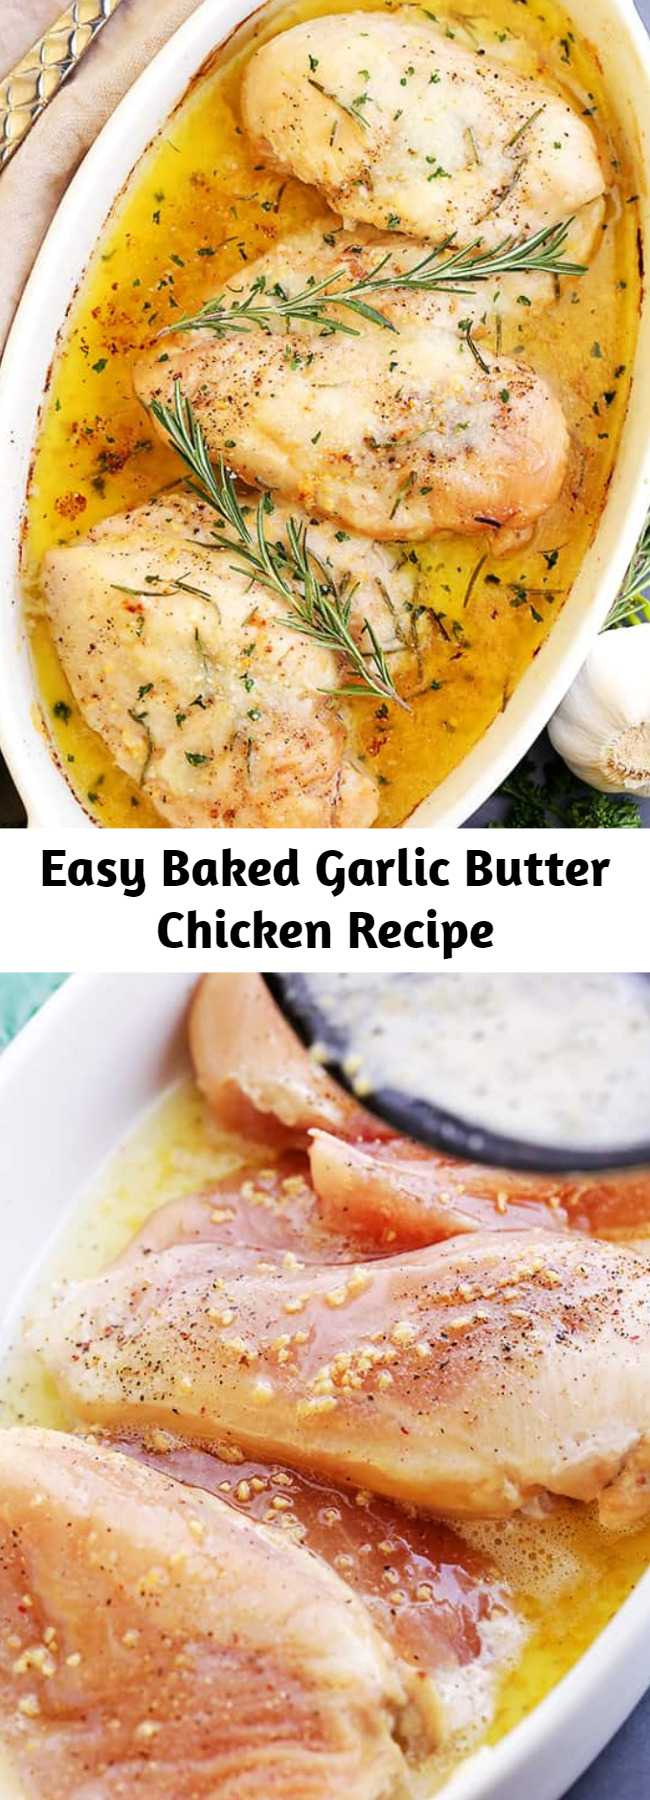 Easy Baked Garlic Butter Chicken Recipe - Super quick, easy and SO delicious Garlic Butter Chicken with fresh rosemary and cheese. The perfect one pan chicken dinner for a weeknight!